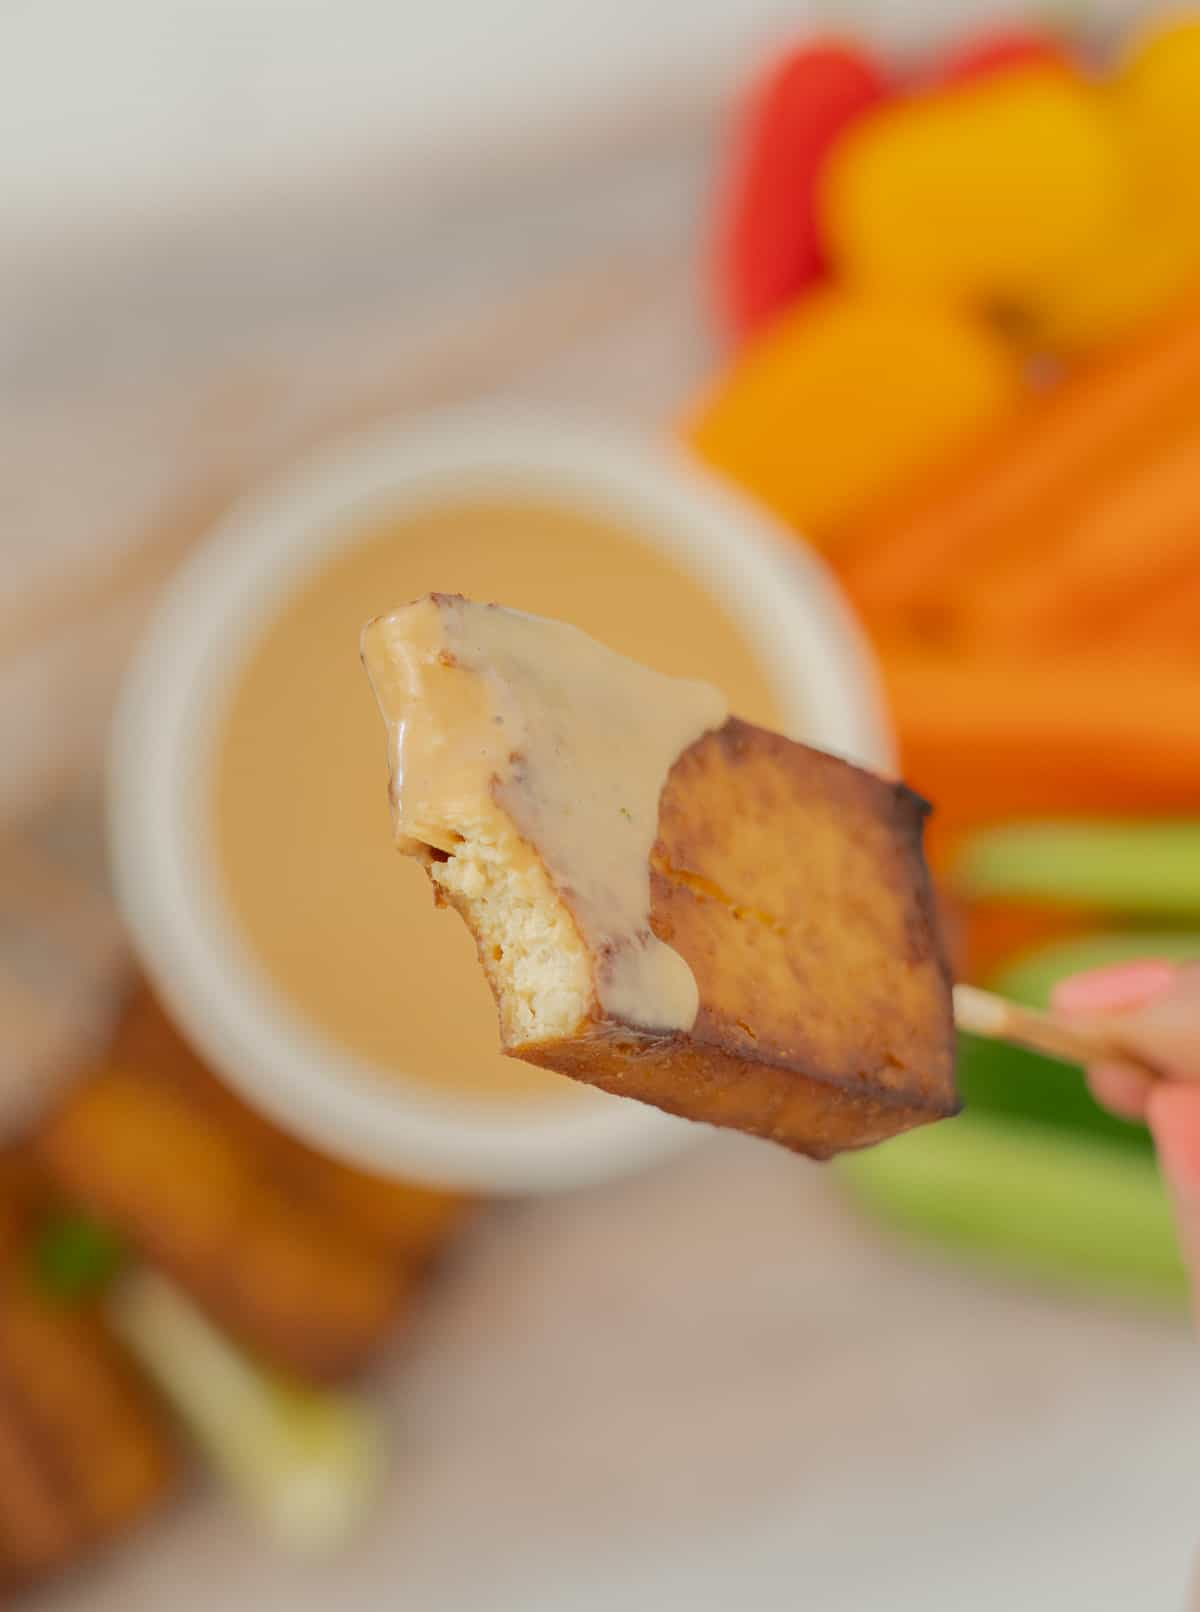 A hand holding a piece of baked tofu on a skewer, a mouthful has been eaten, revealing the creamy white centre of the tofu.